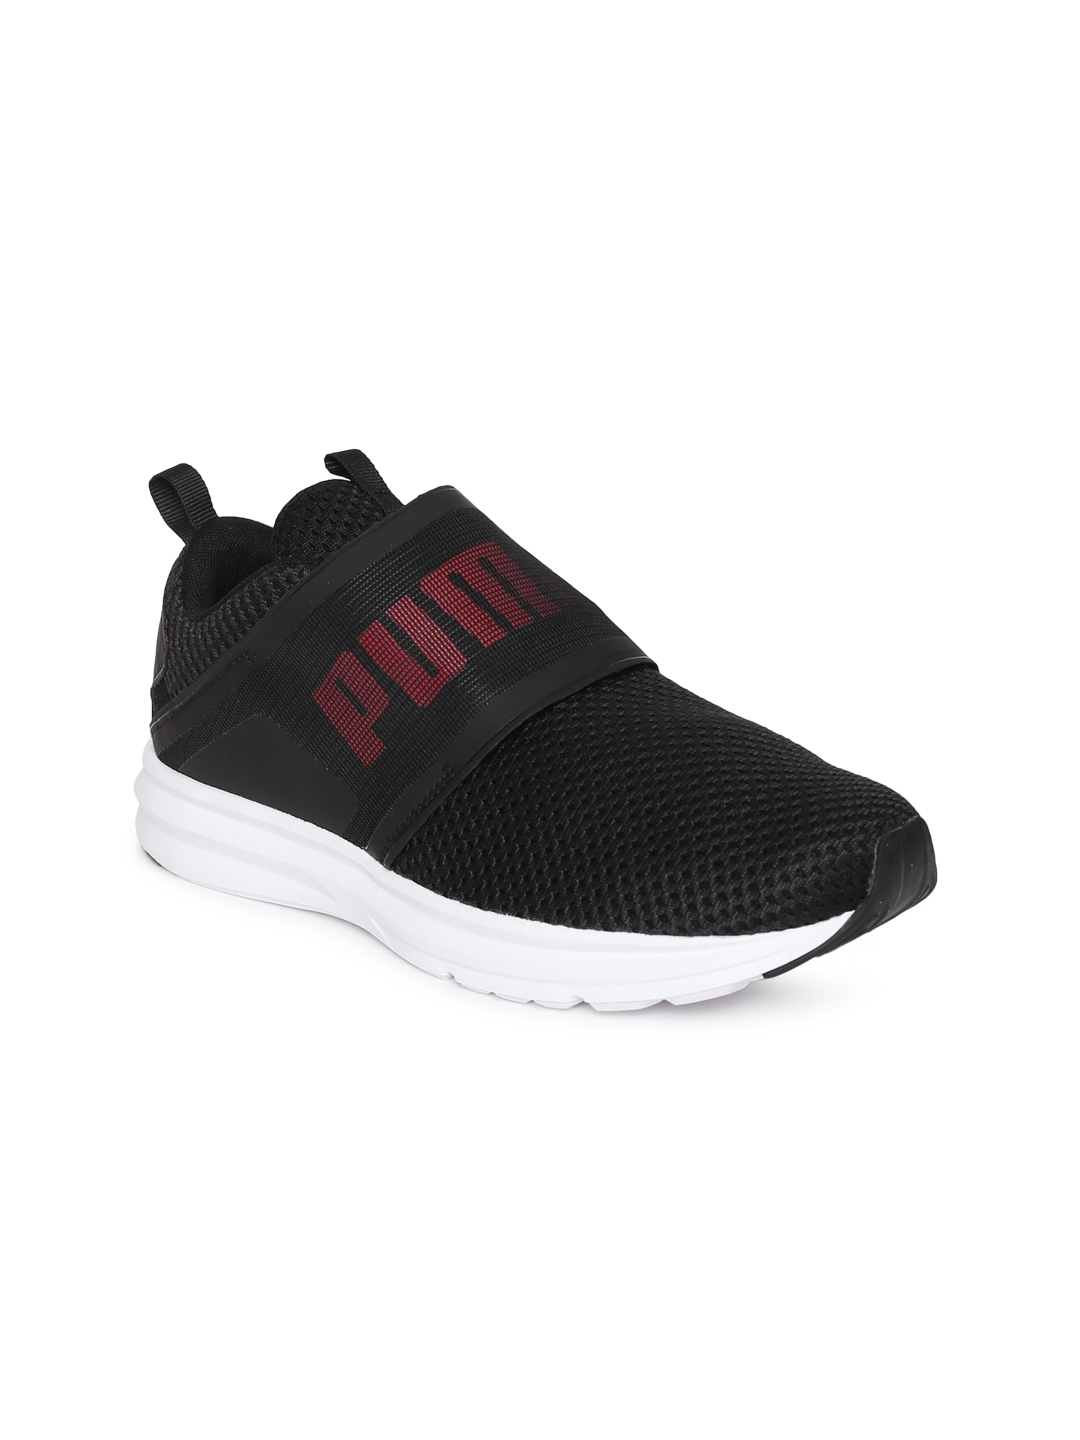 173a246d2c80 Buy Puma Women Black Enzo Strap Mesh WN S Training Shoes - Sports ...